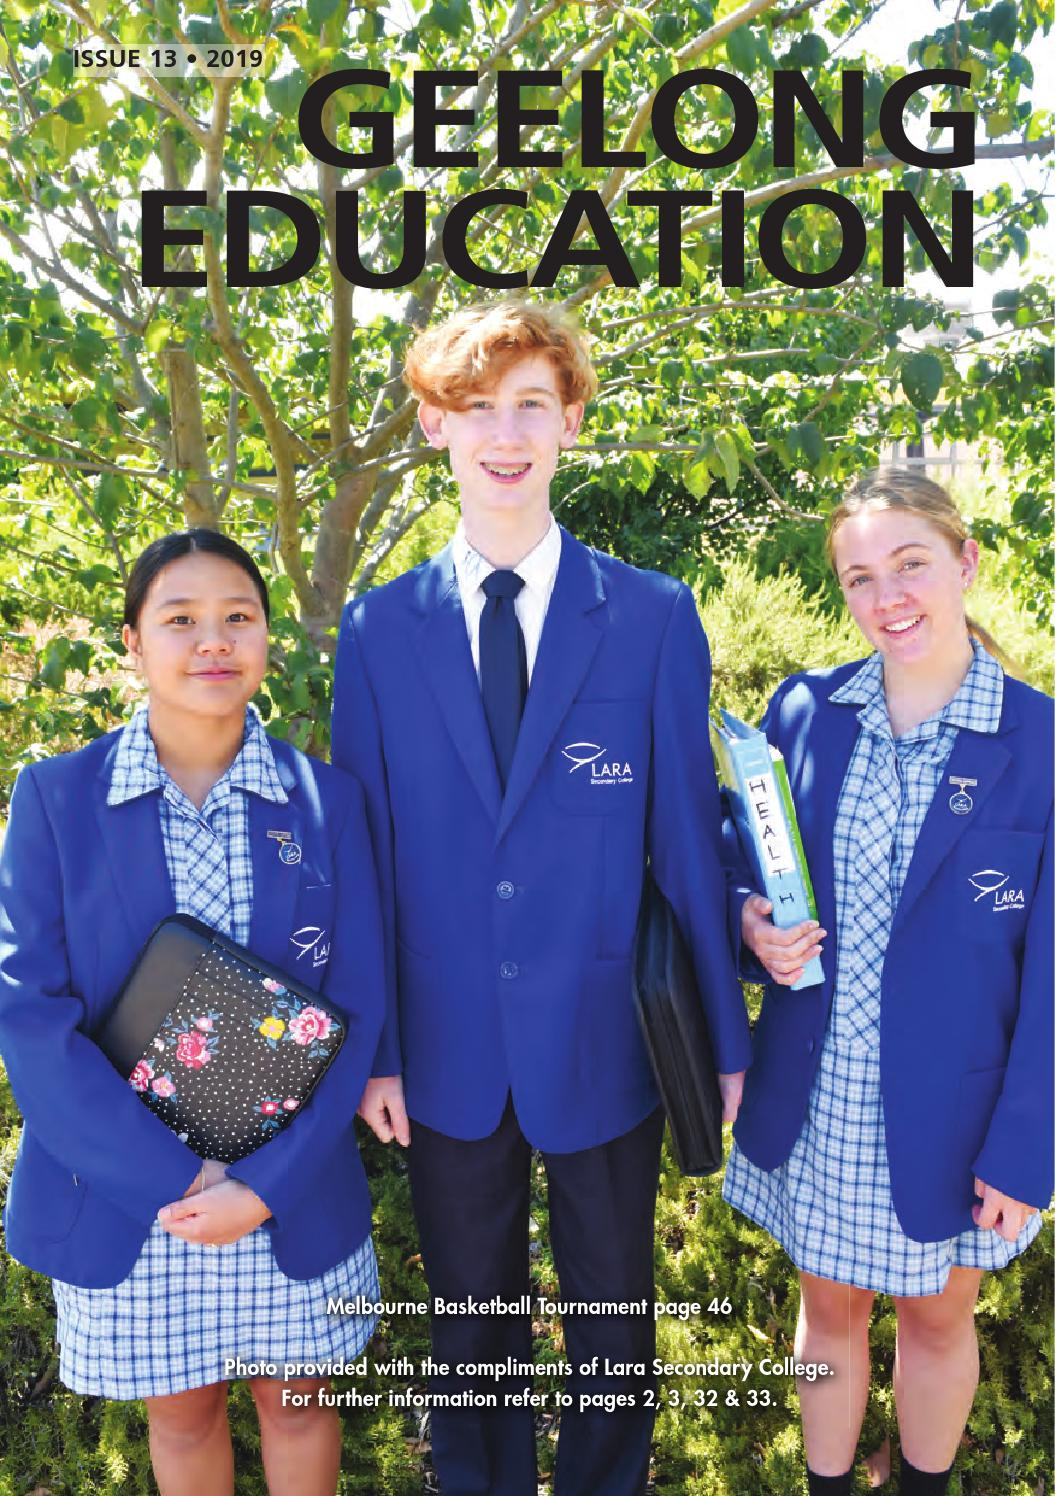 Geelong Education Guide 2019 By Star News Group Issuu